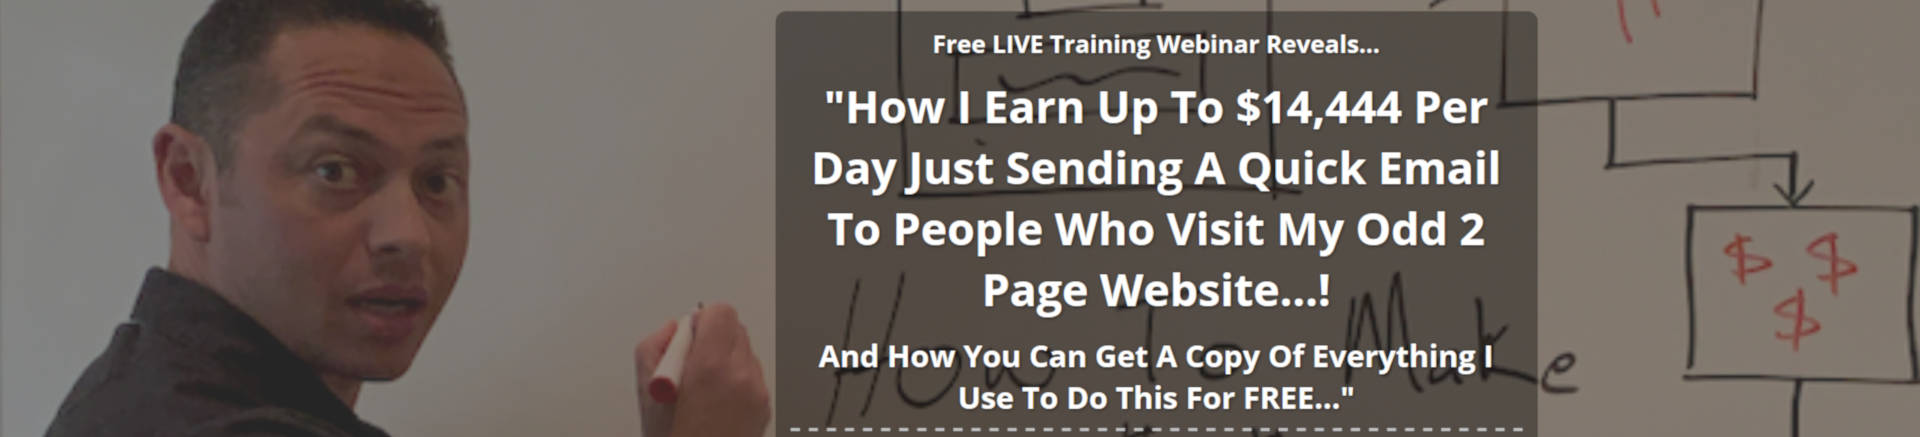 Cheapest Training Program Deal